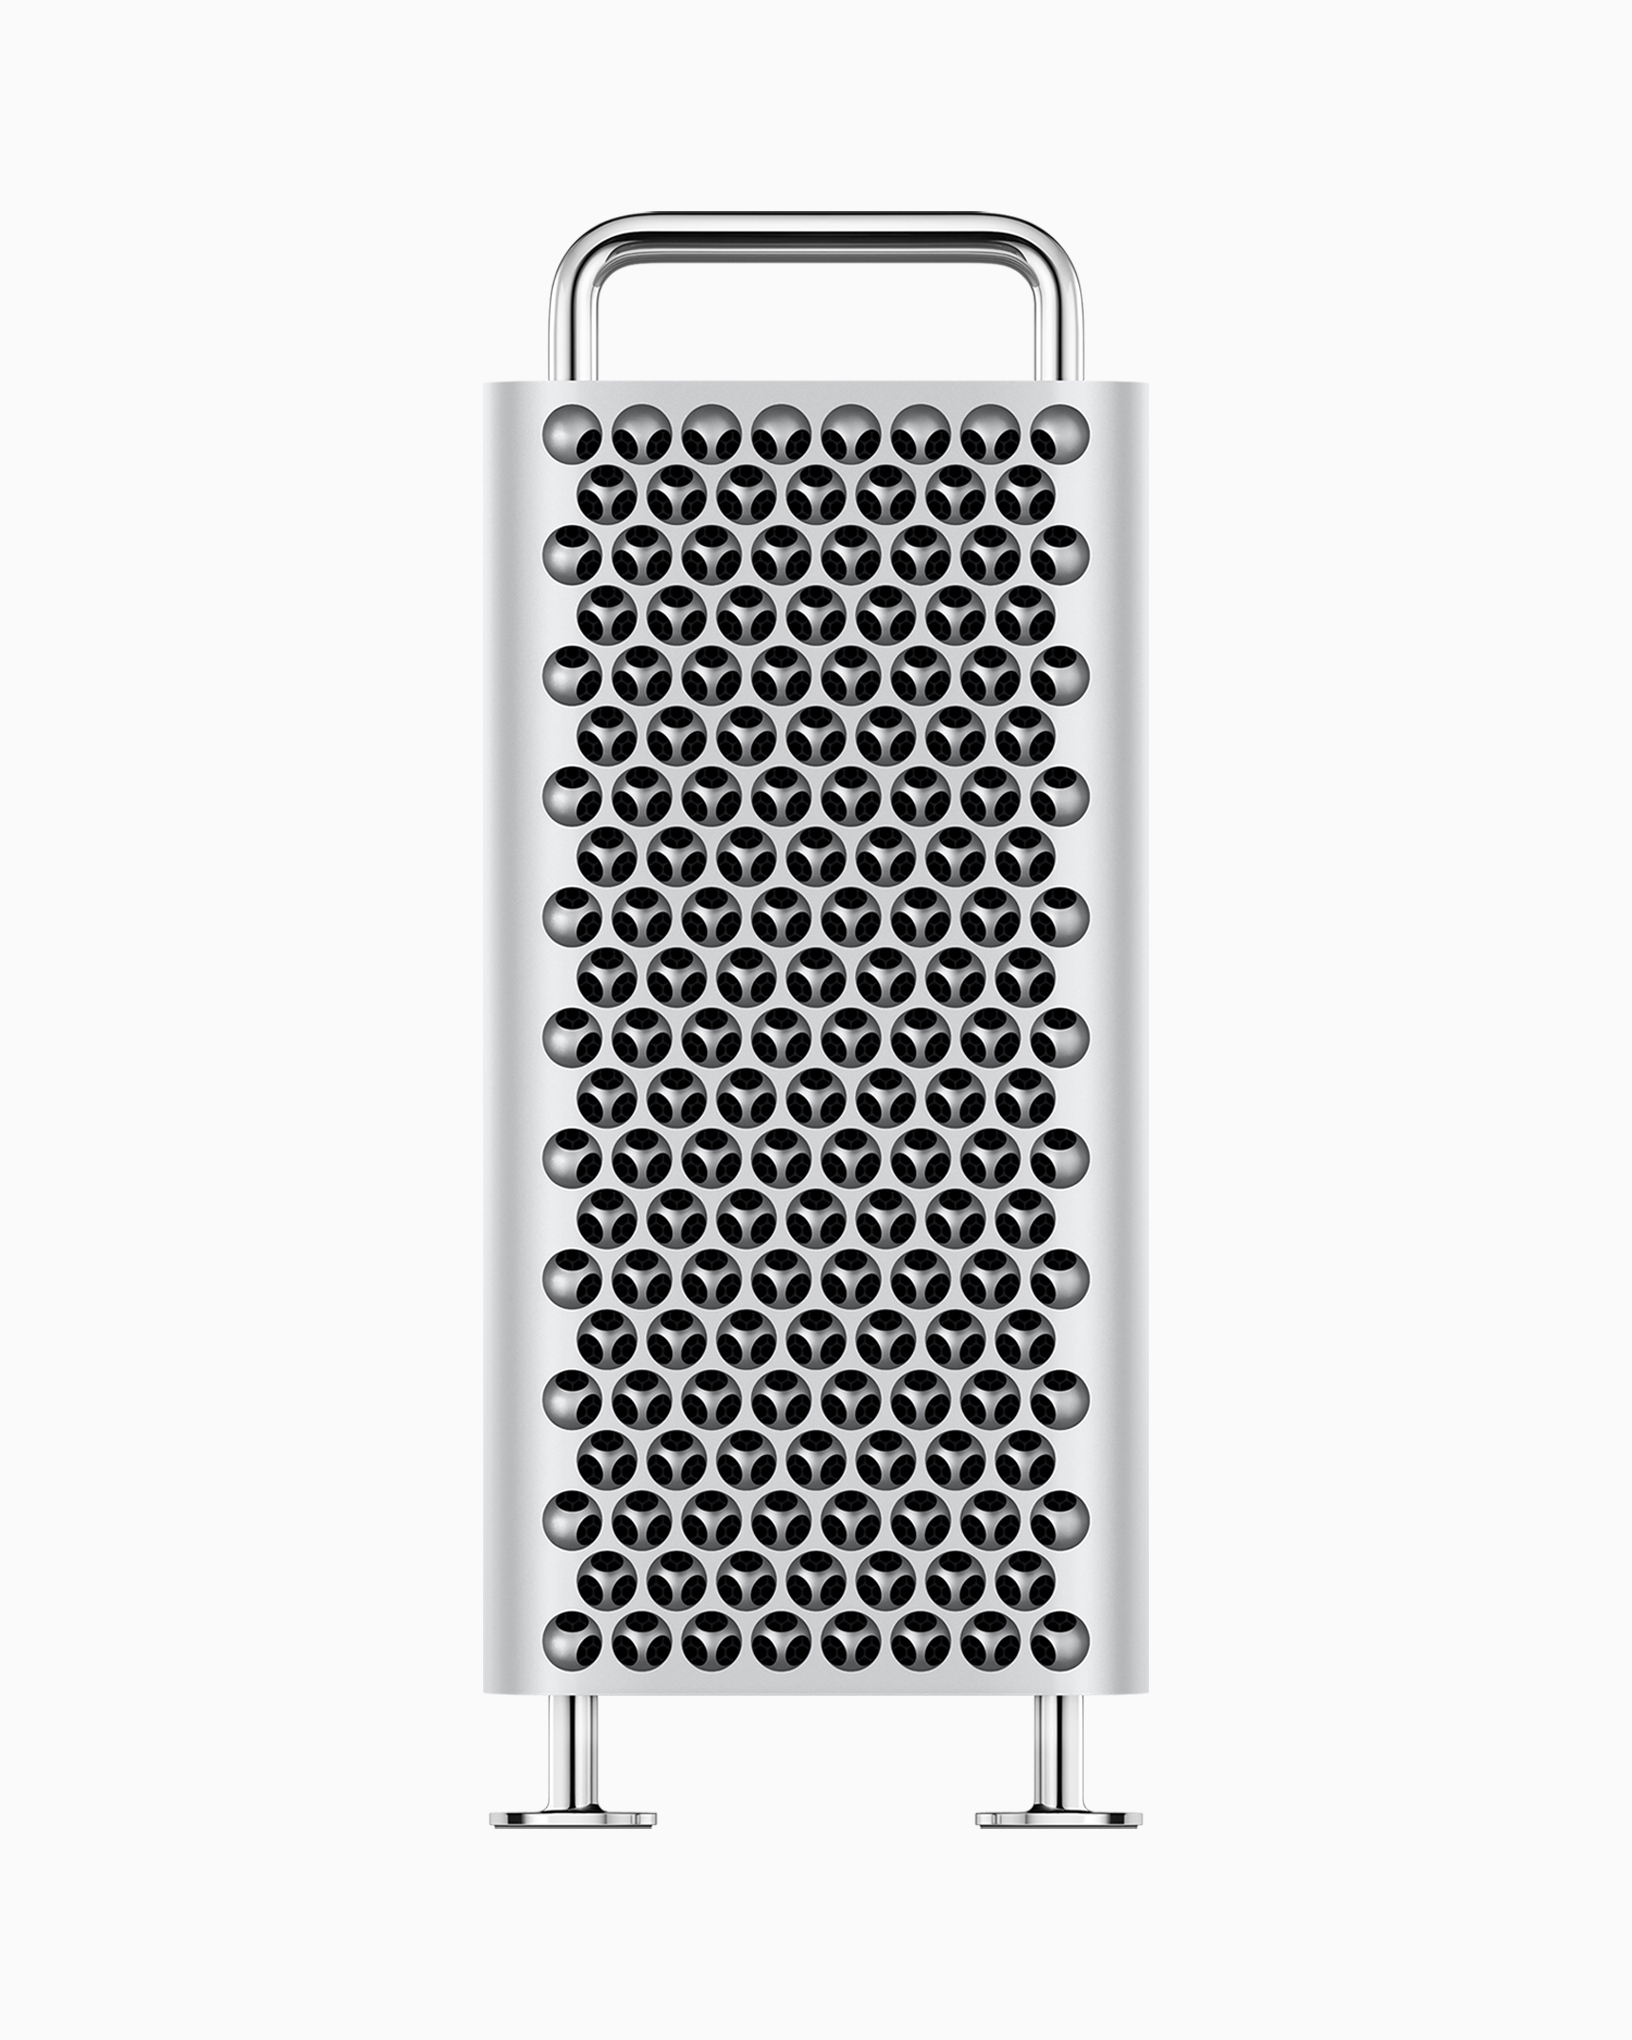 Unboxing the tech of the new Mac Pro 2